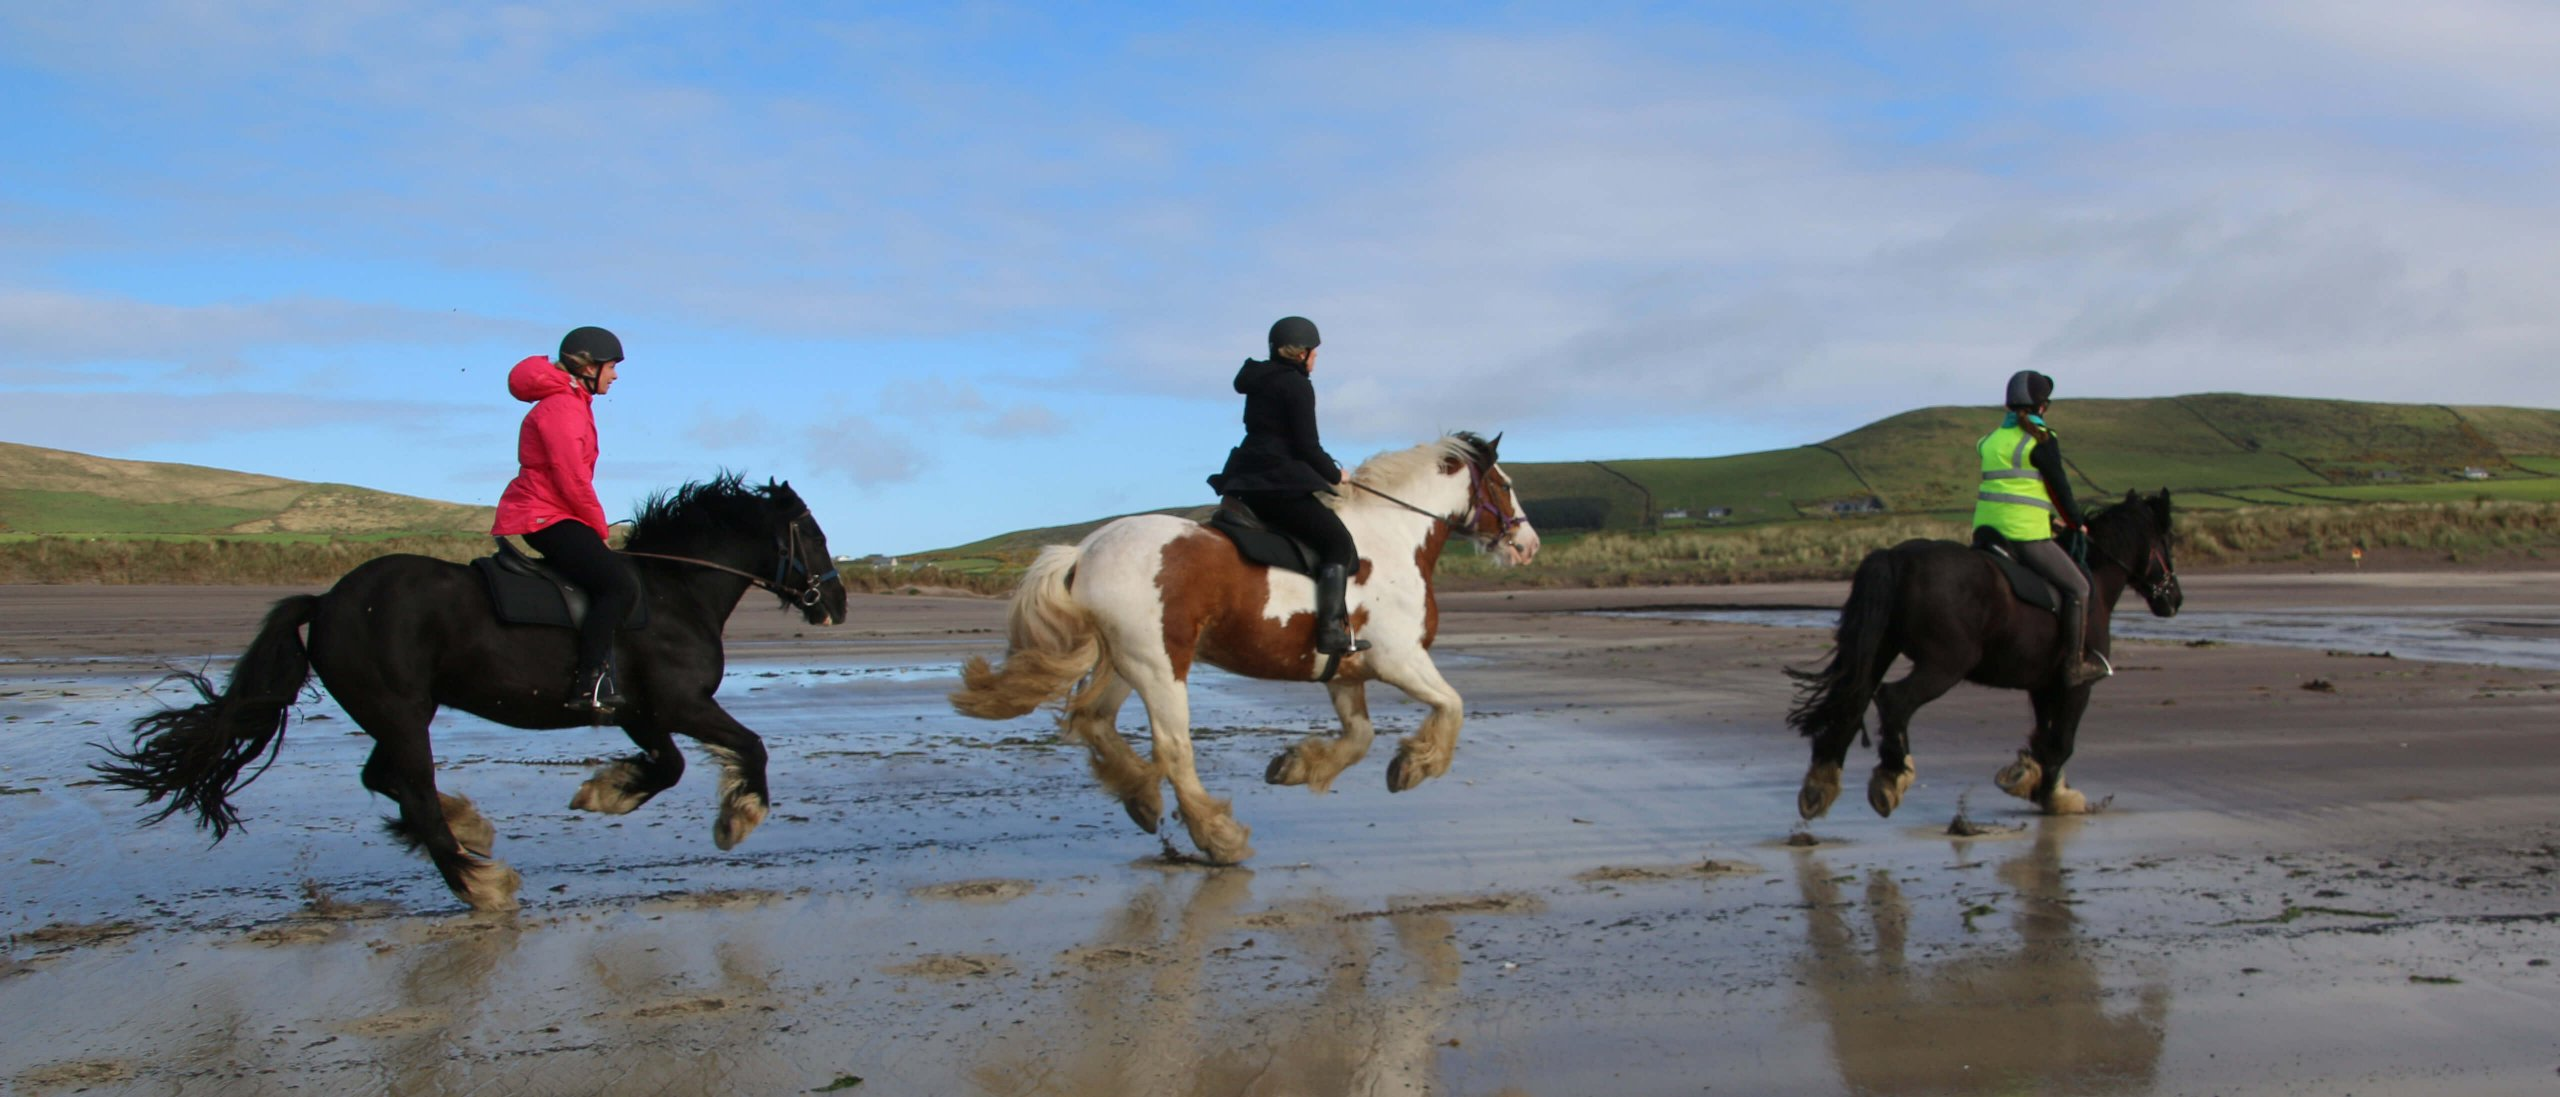 Three horse riders gallop along a scenic beach in Ireland